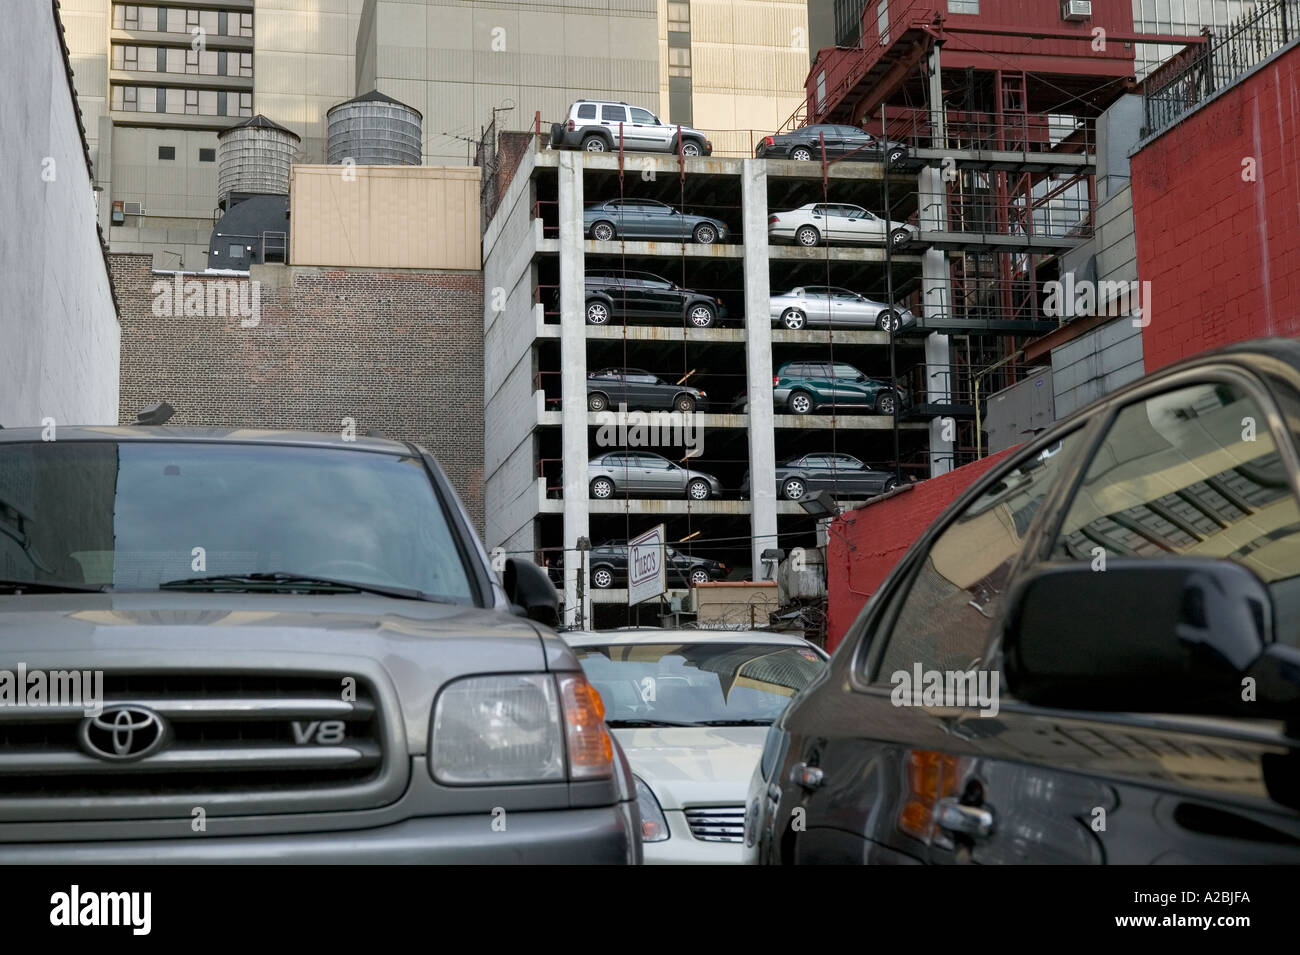 New York vertical car parking system USA 2005 - Stock Image